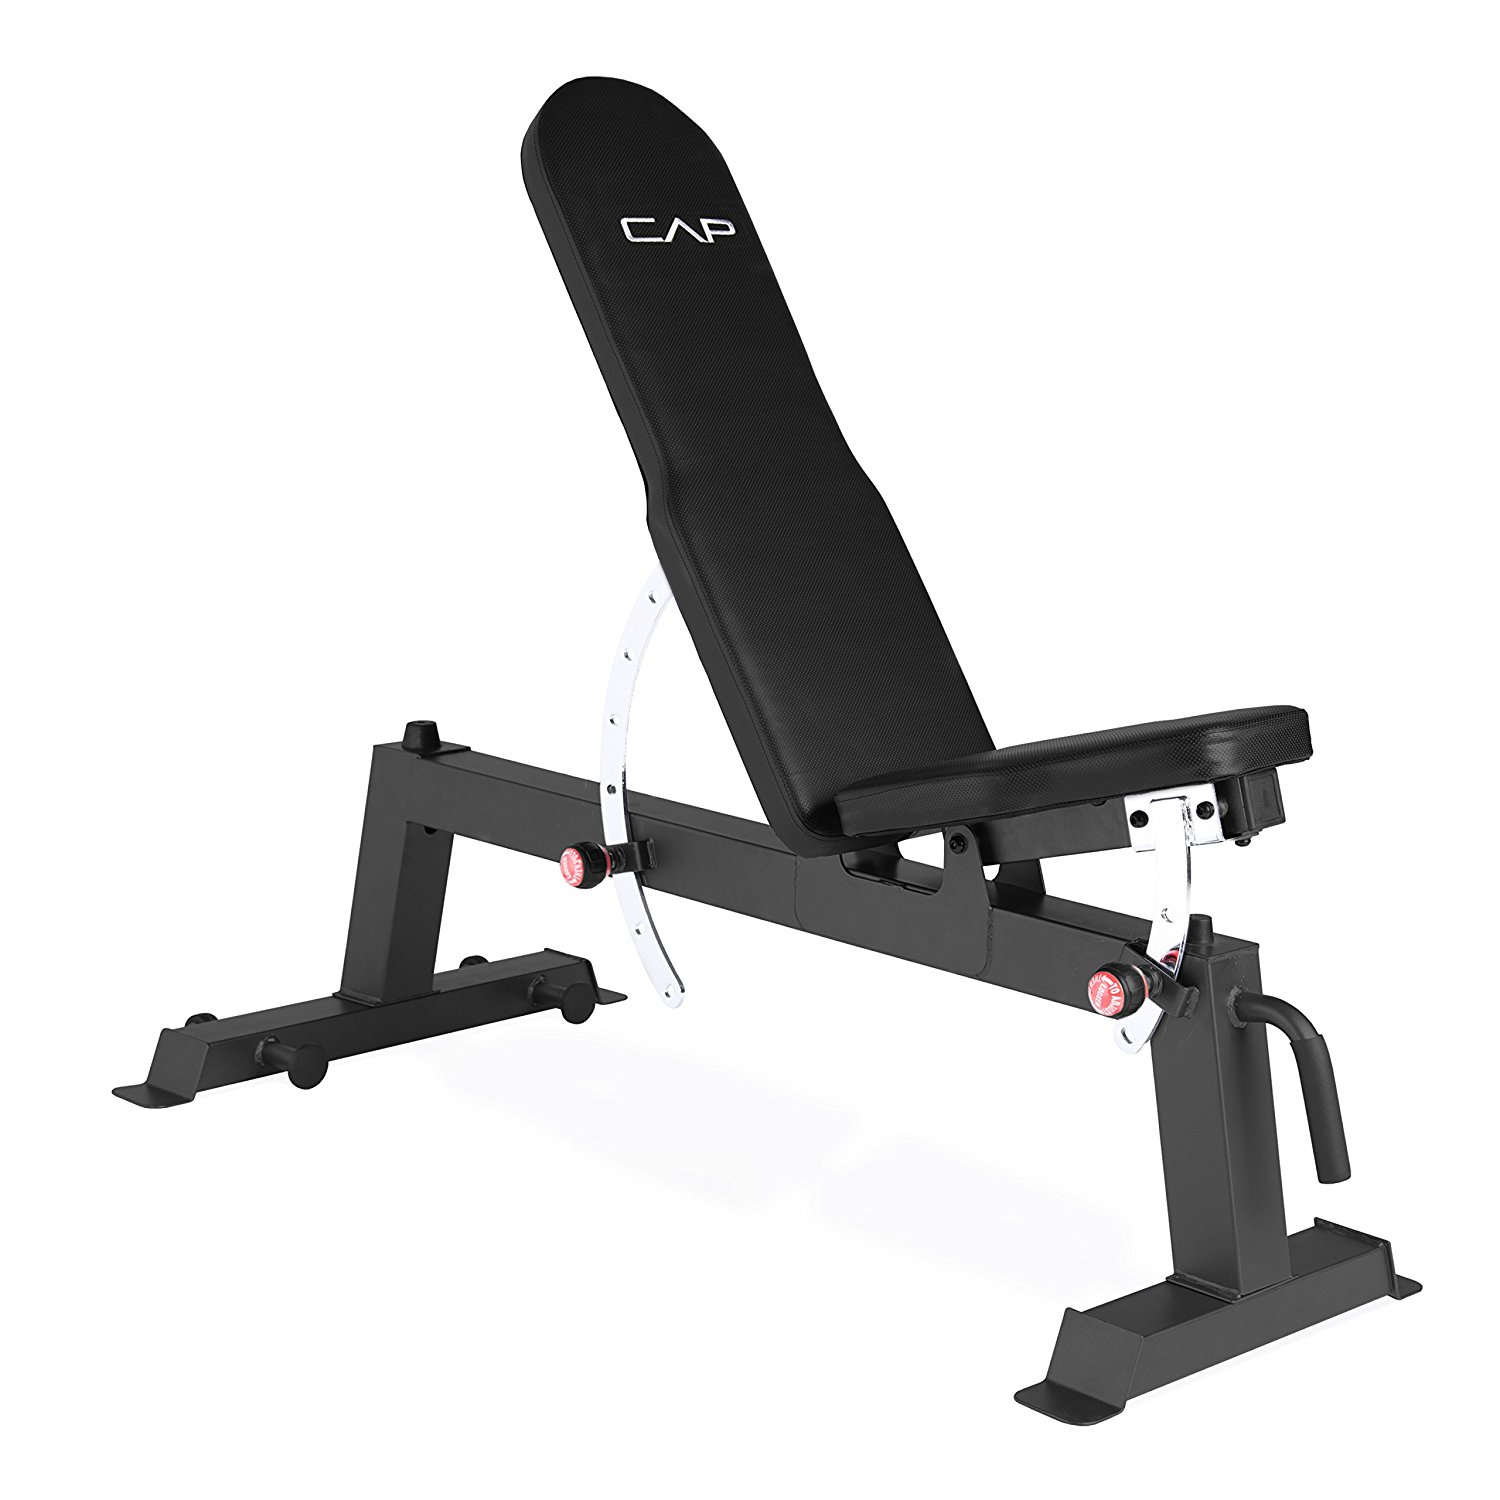 Bench Press Craigslist | Craigslist Weight Bench | Weight Bench Set for Sale